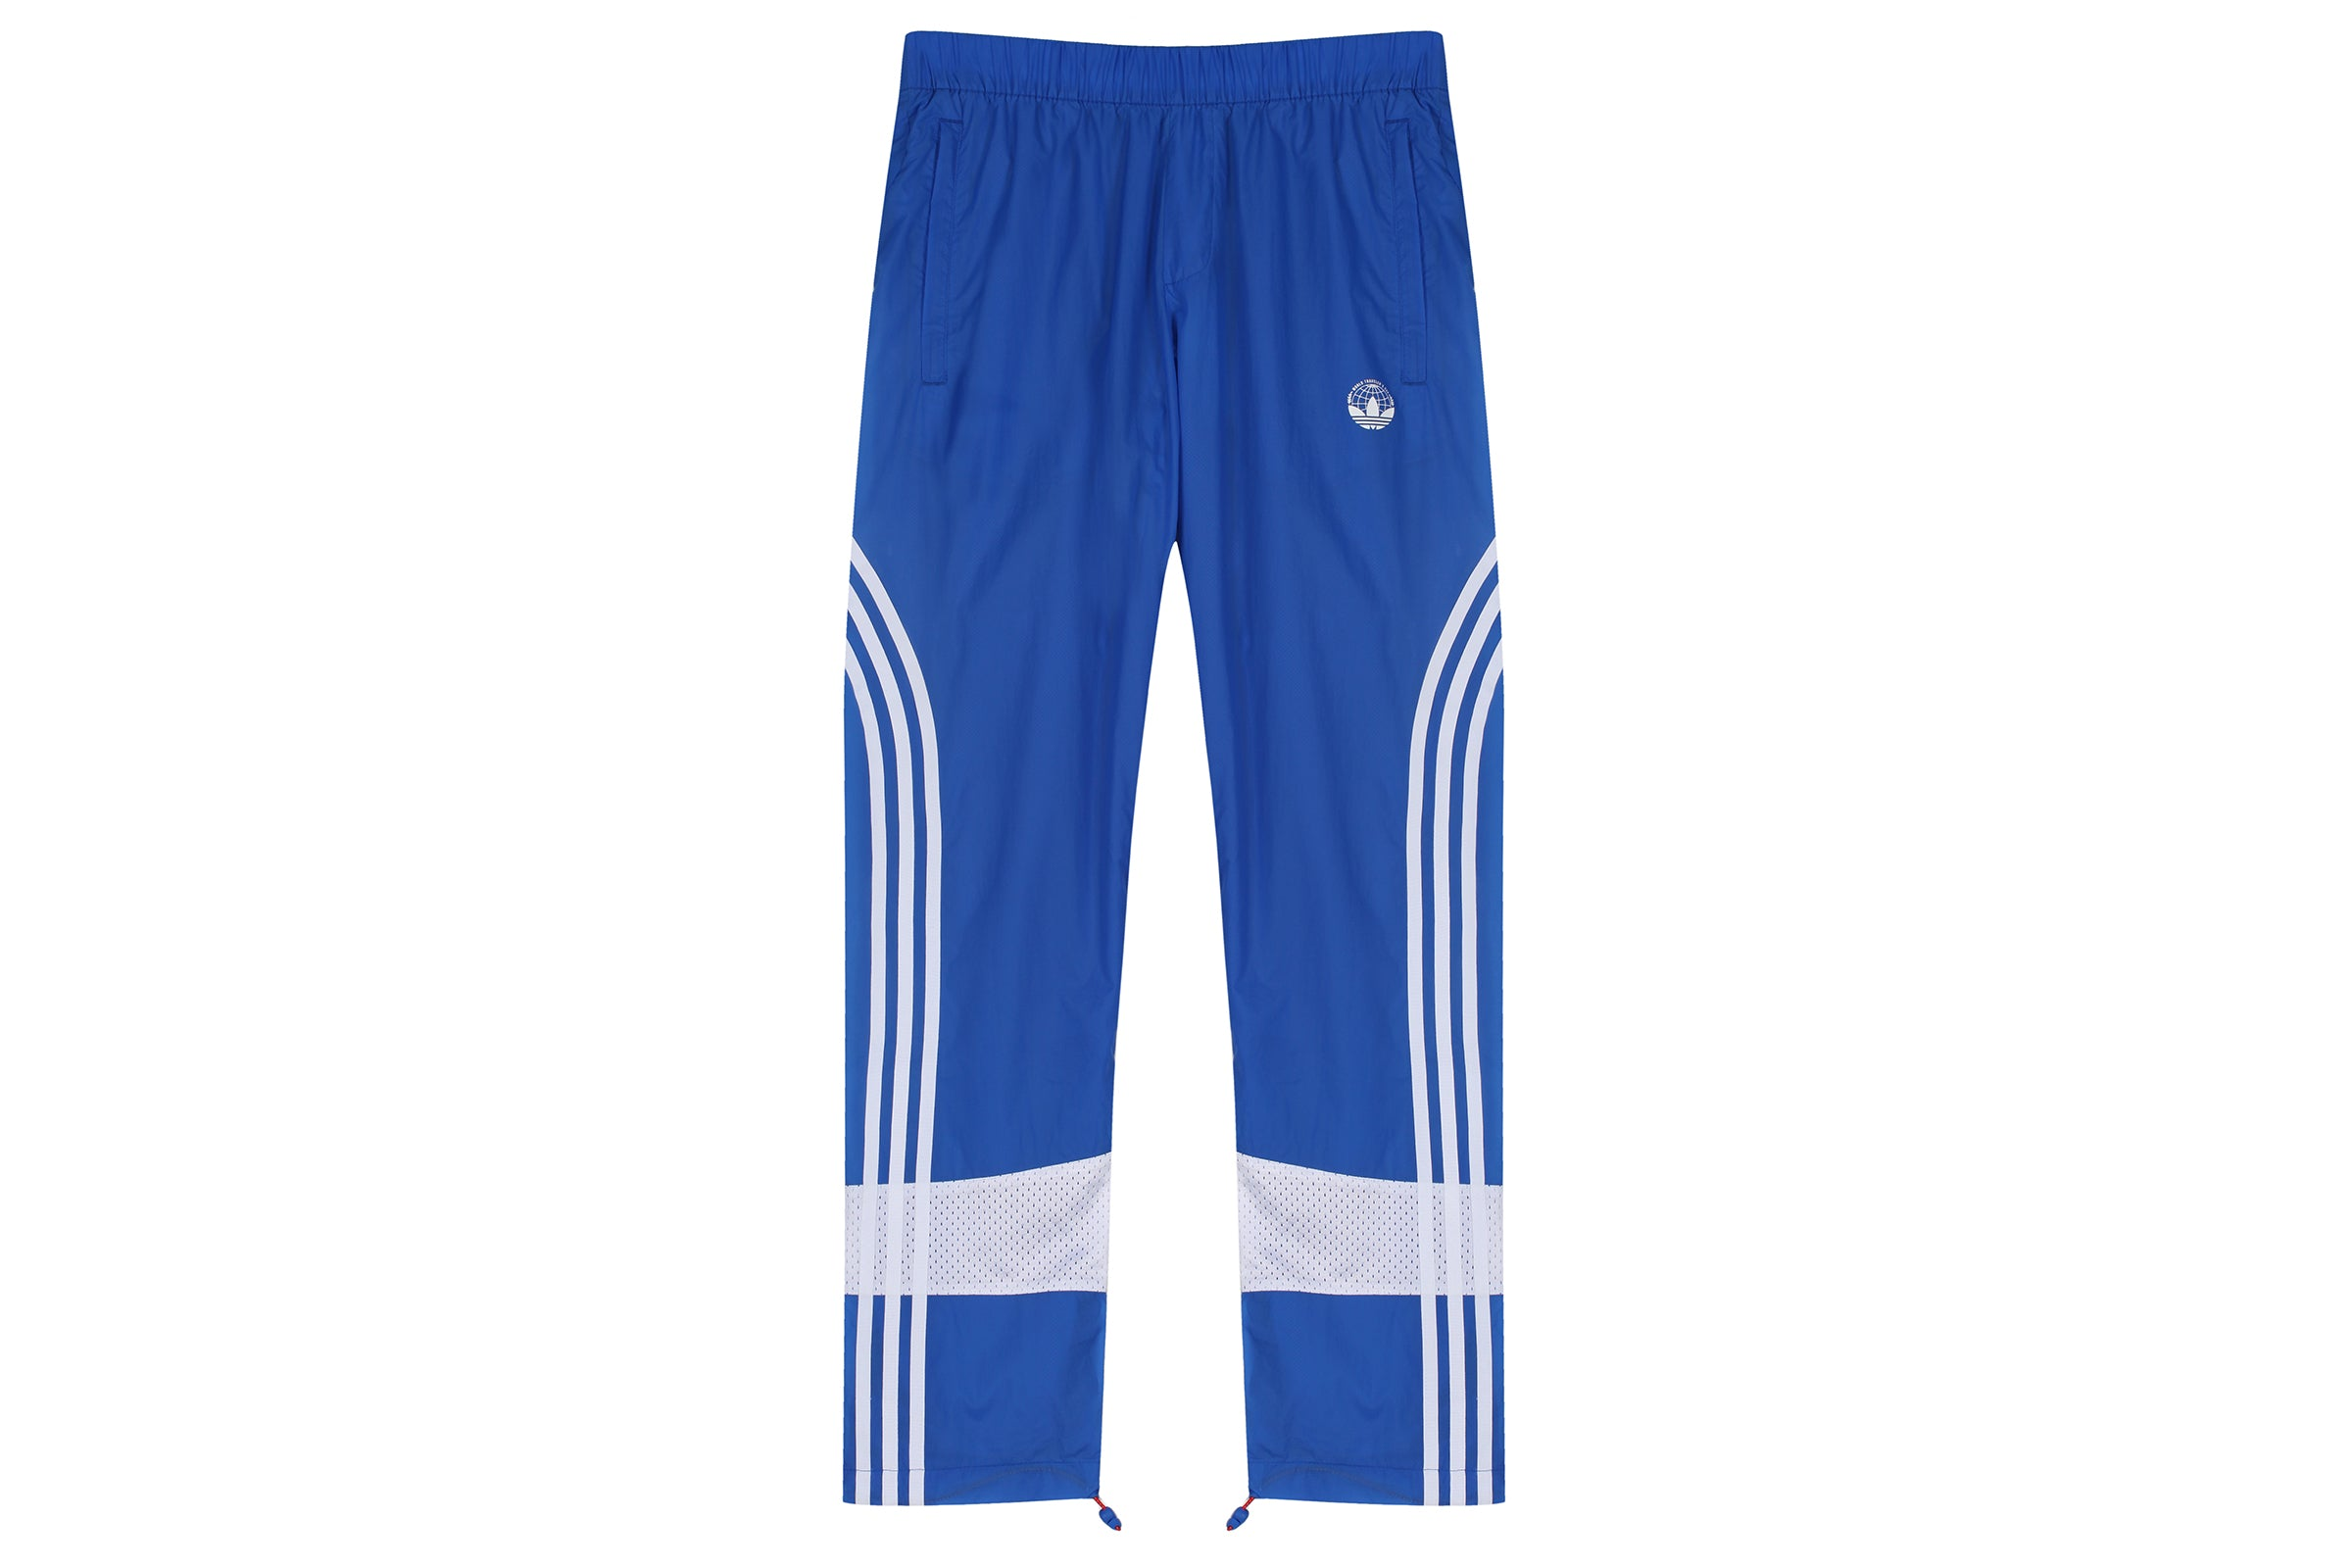 Adidas Track Pant x Oyster Holdings